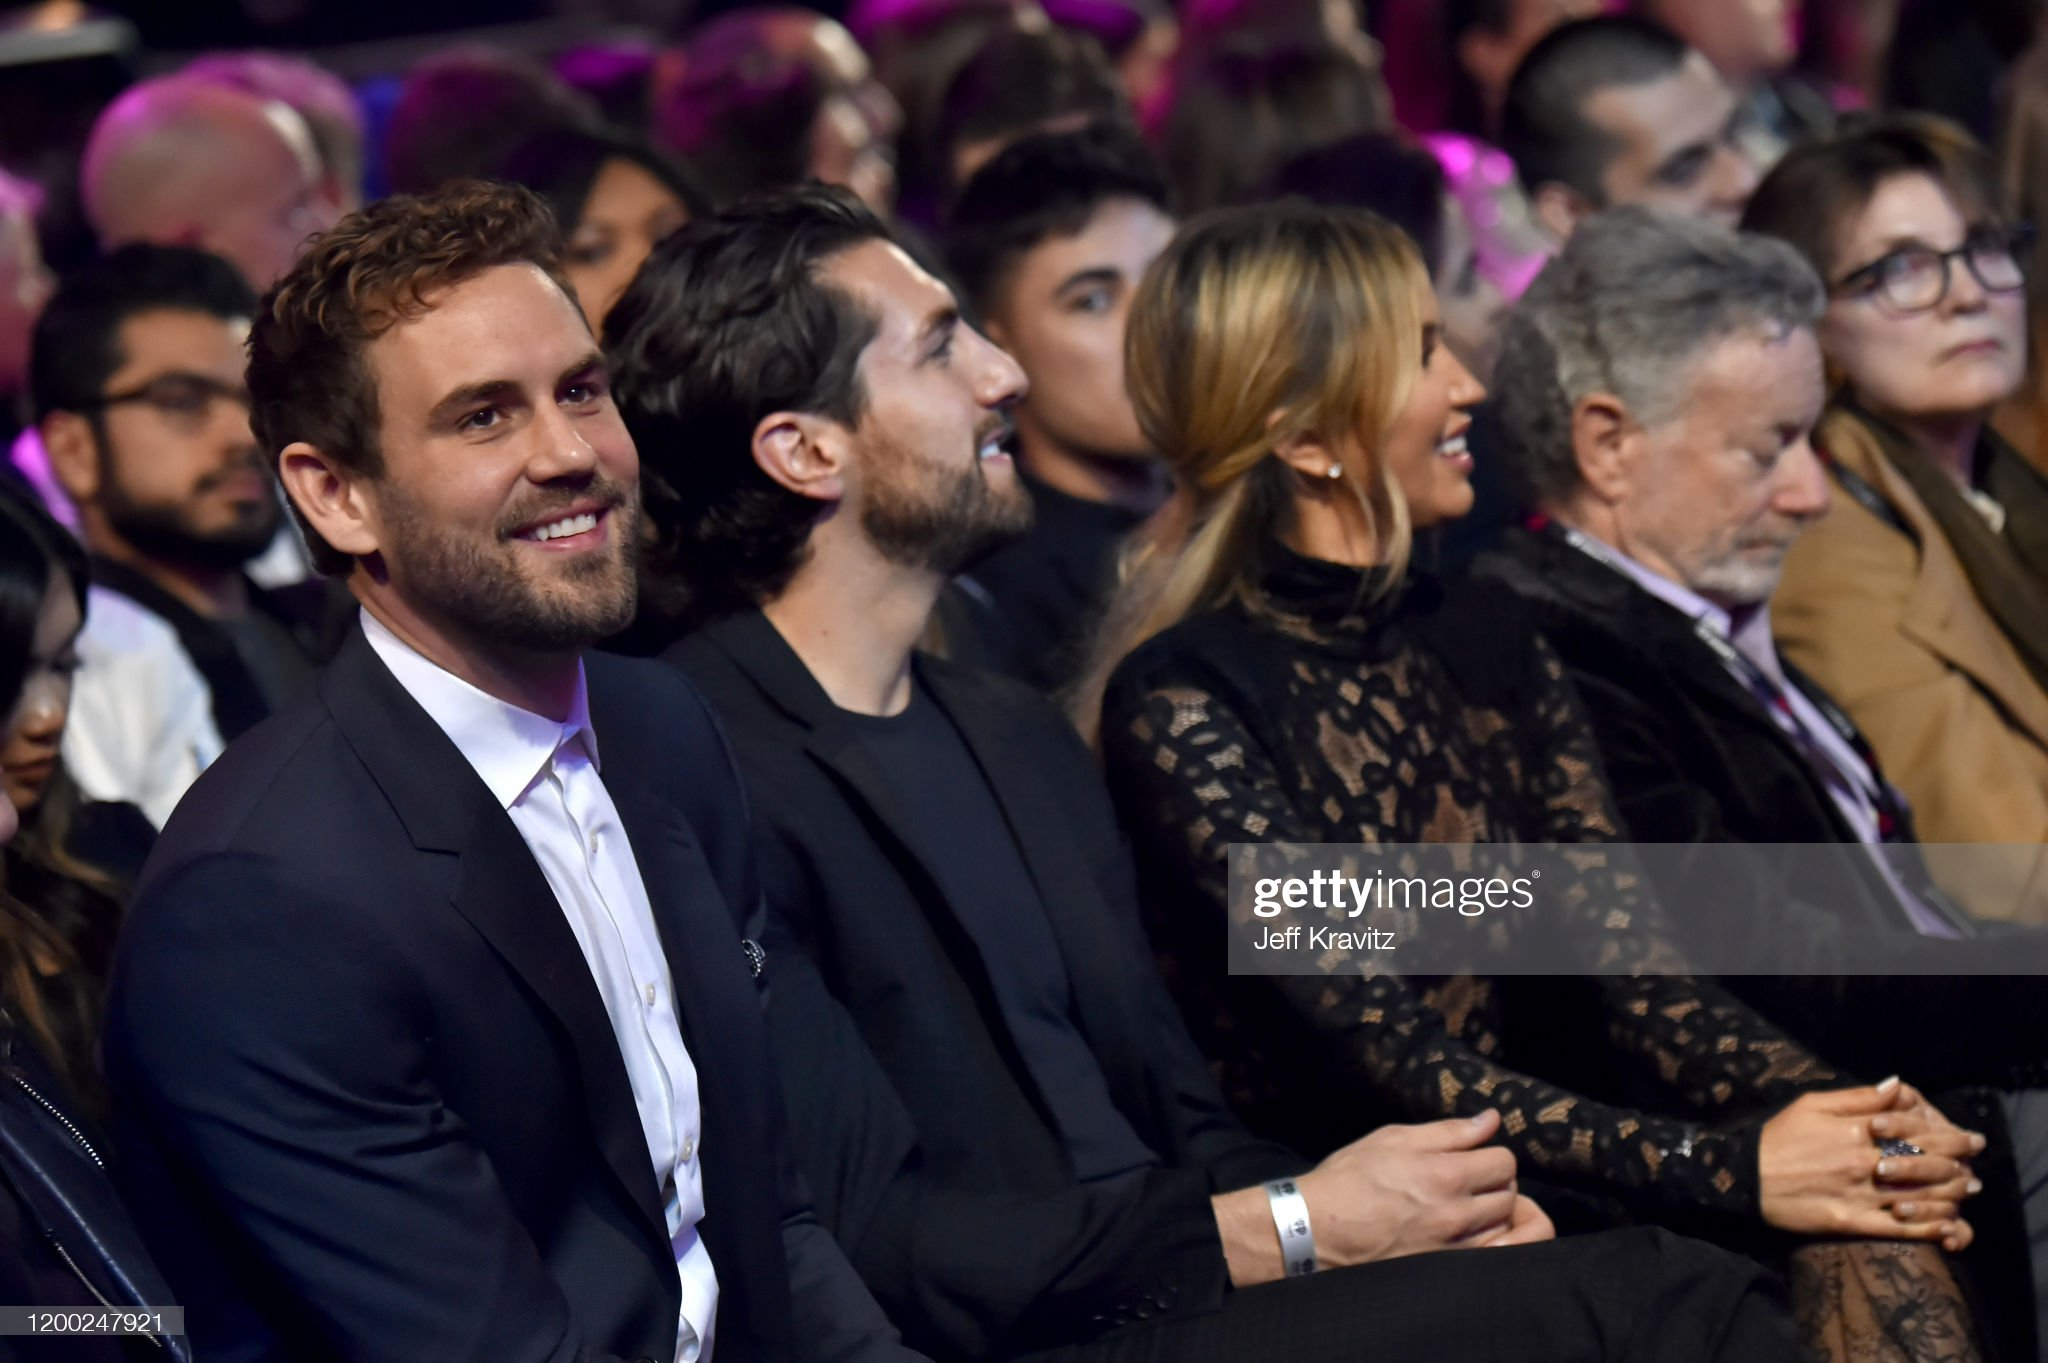 Kaitlyn Bristowe - Jason Tartick - FAN Forum - Discussion  - Page 51 Nick-viall-jason-tartick-and-kaitlyn-bristowe-attend-the-2020-at-picture-id1200247921?s=2048x2048